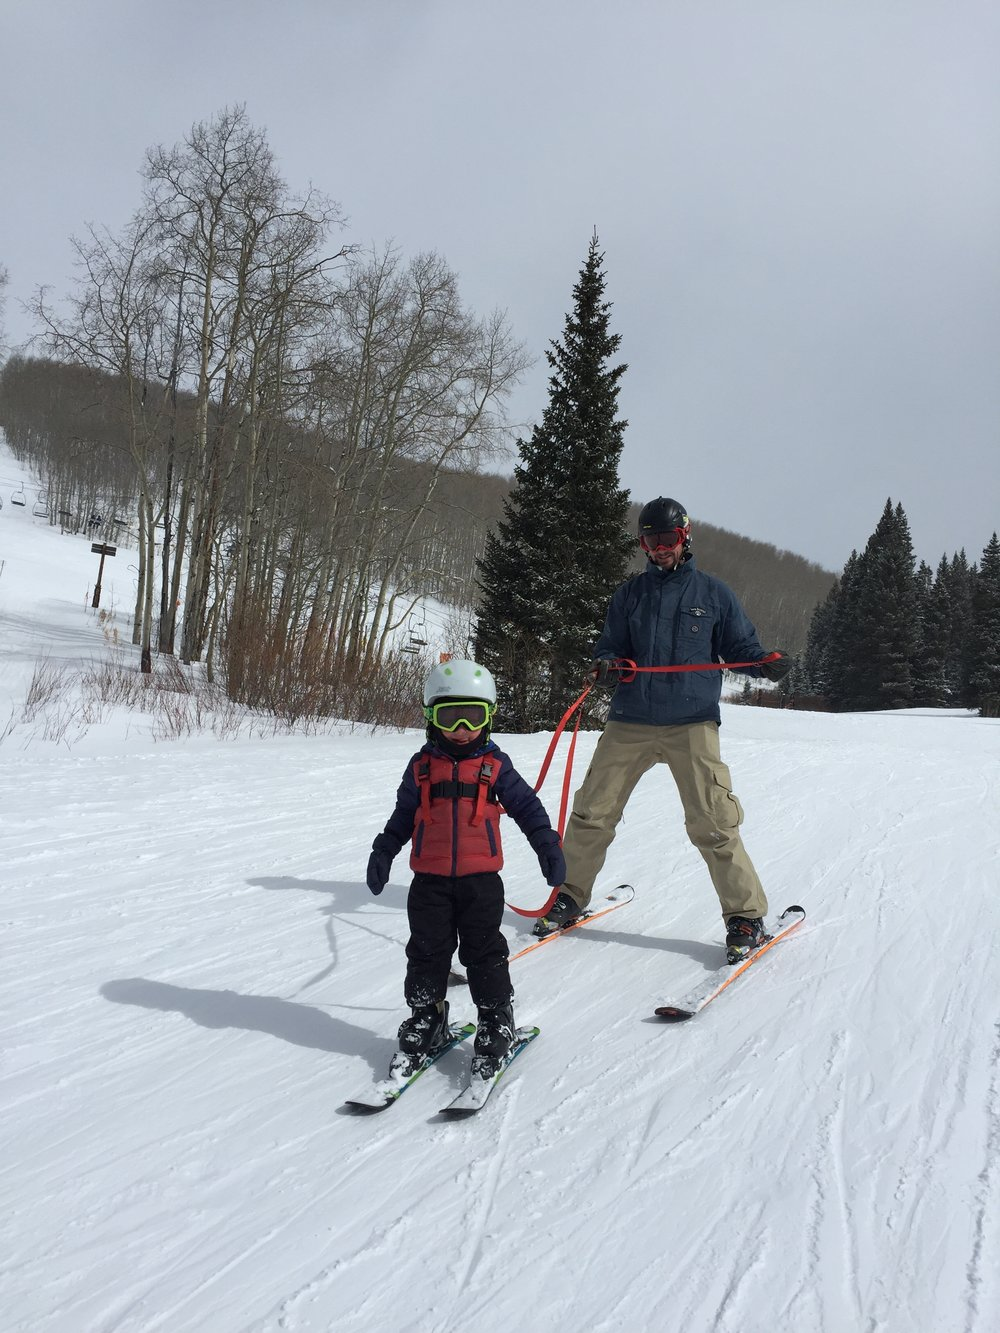 Skiin' with dad!